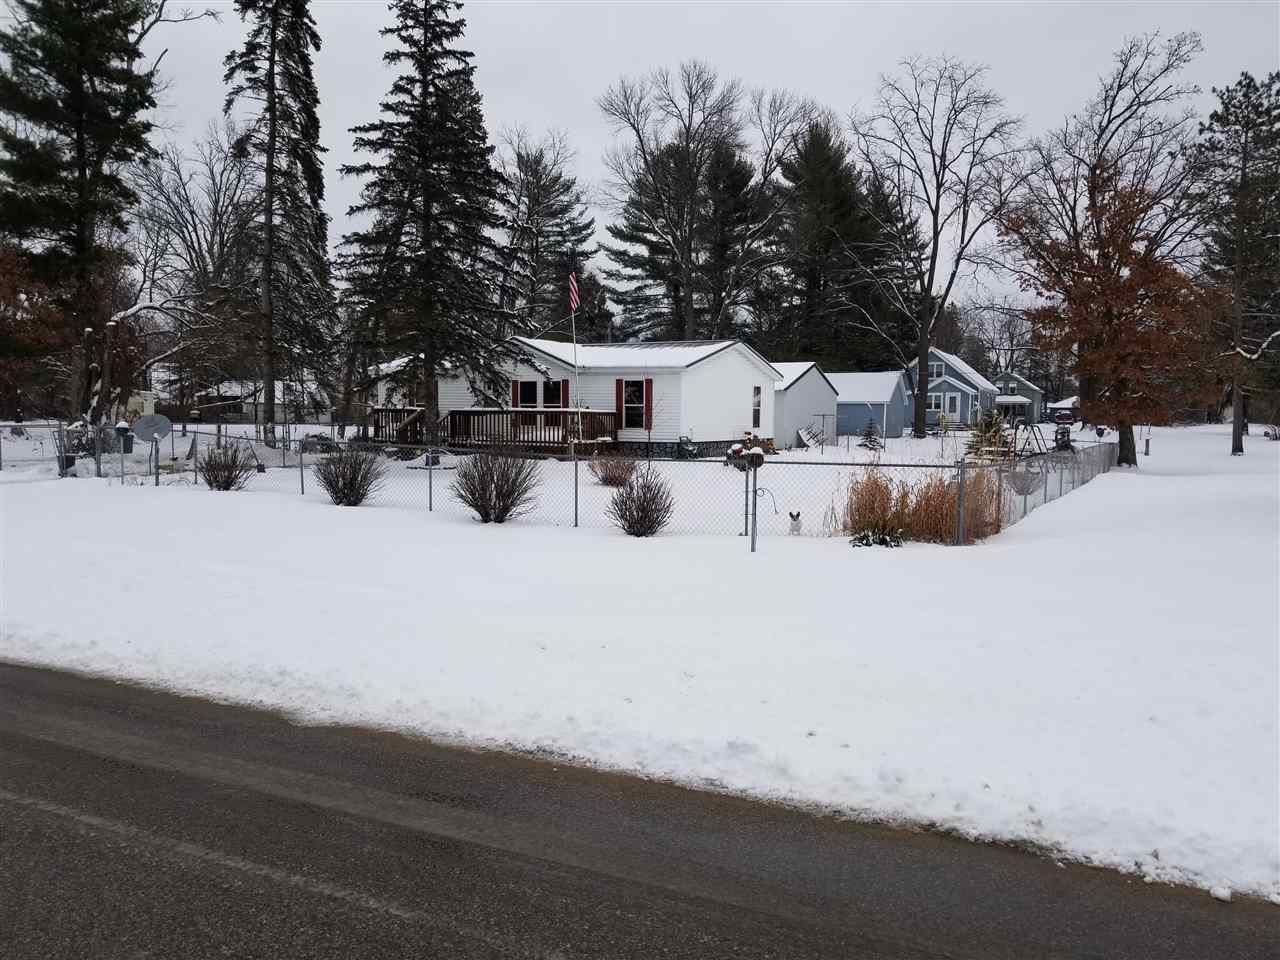 500 Raymond St, Friendship, WI 53934 - #: 1877616